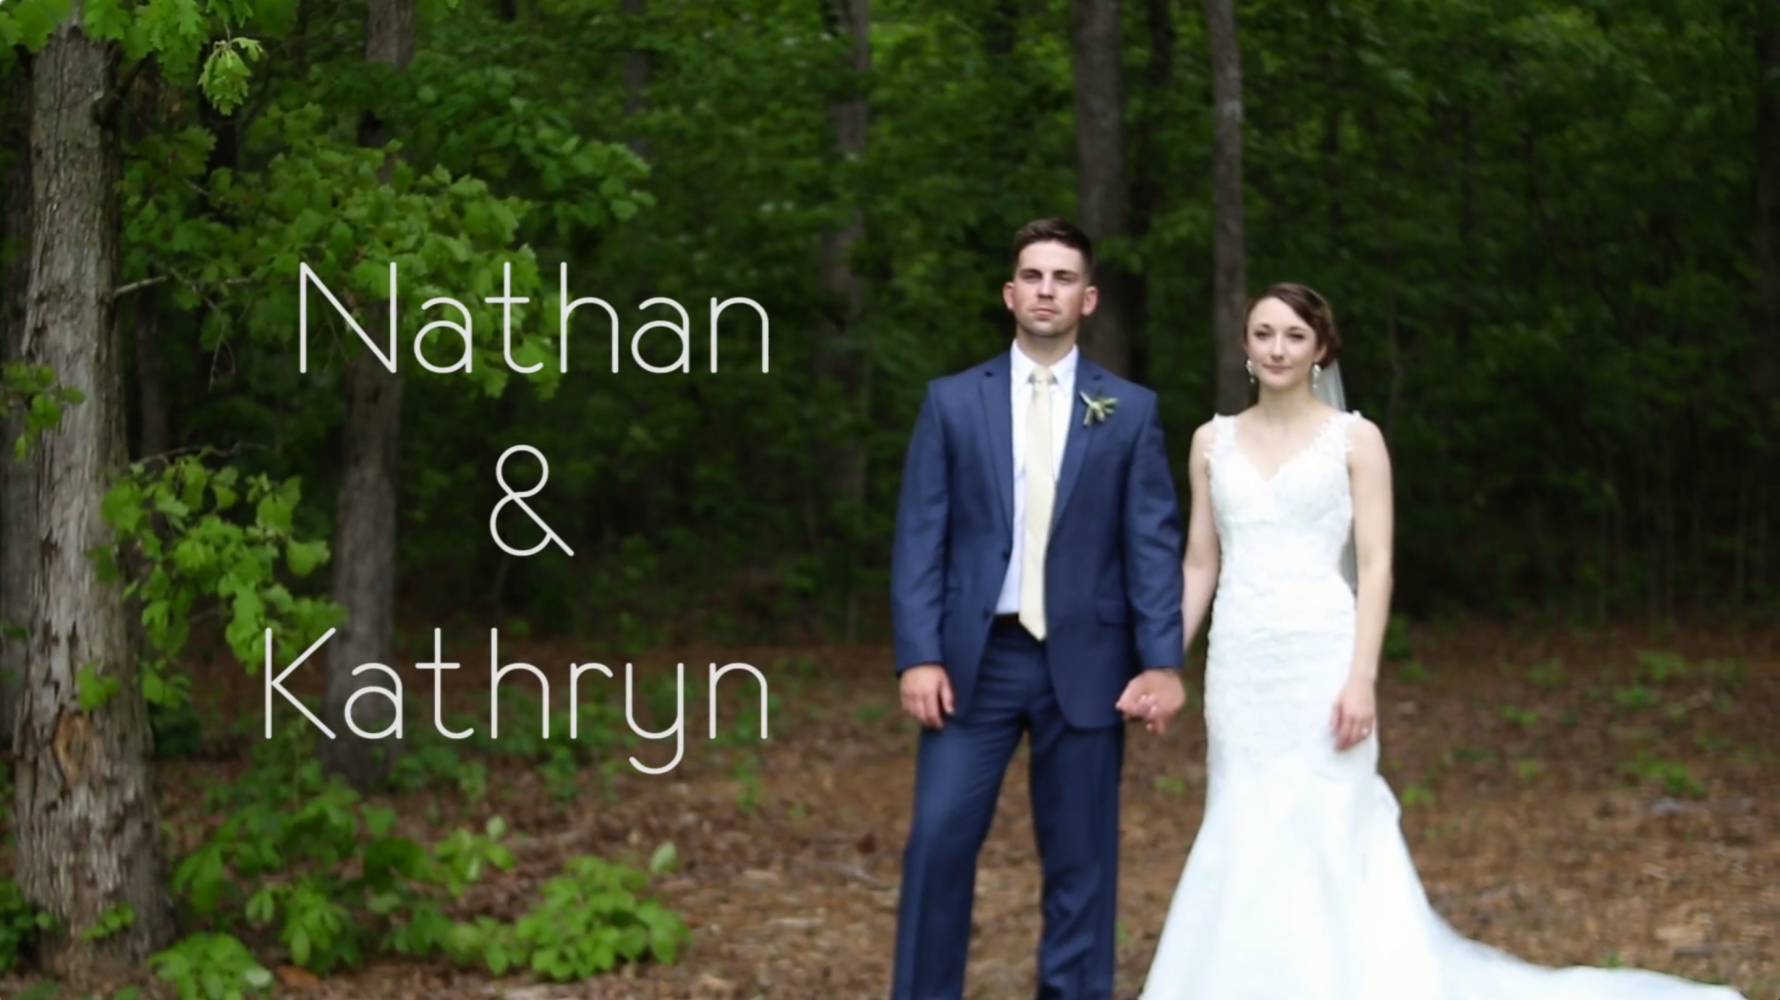 Nathan + Kathryn | Greenville, South Carolina | The Hollow at Paris Mountain